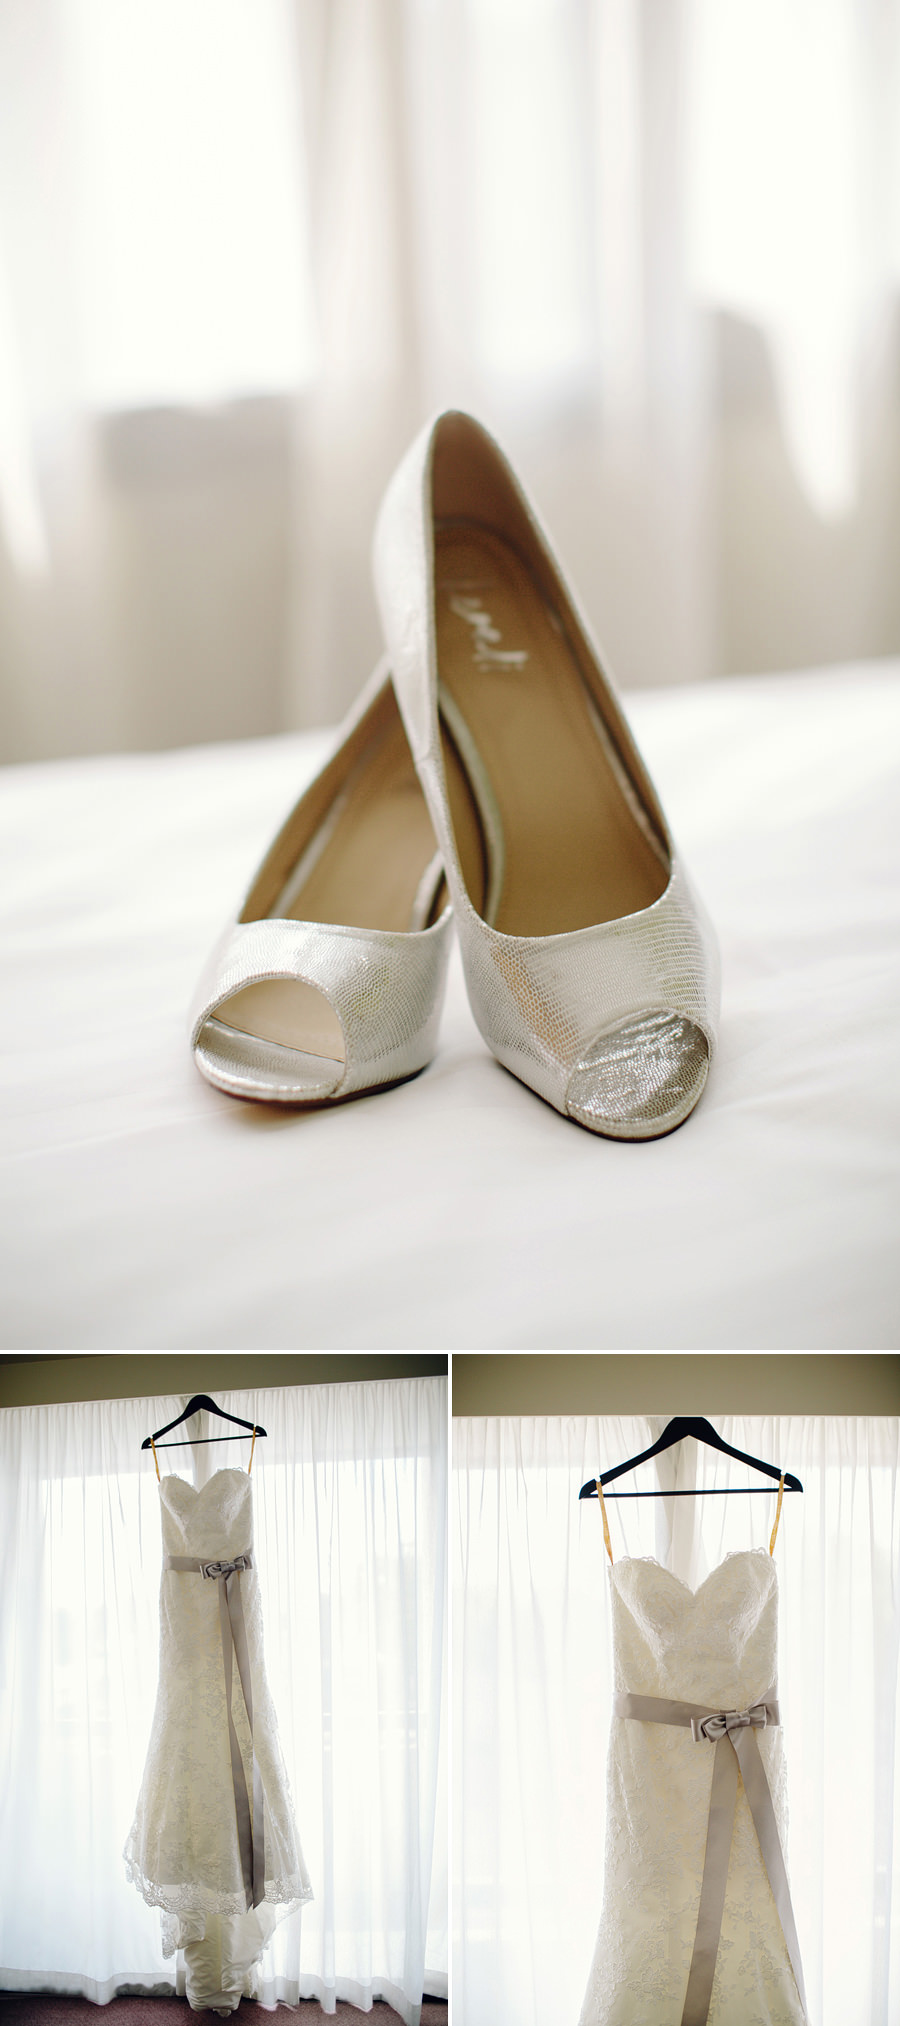 North Sydney Wedding Photographer: Bridal details